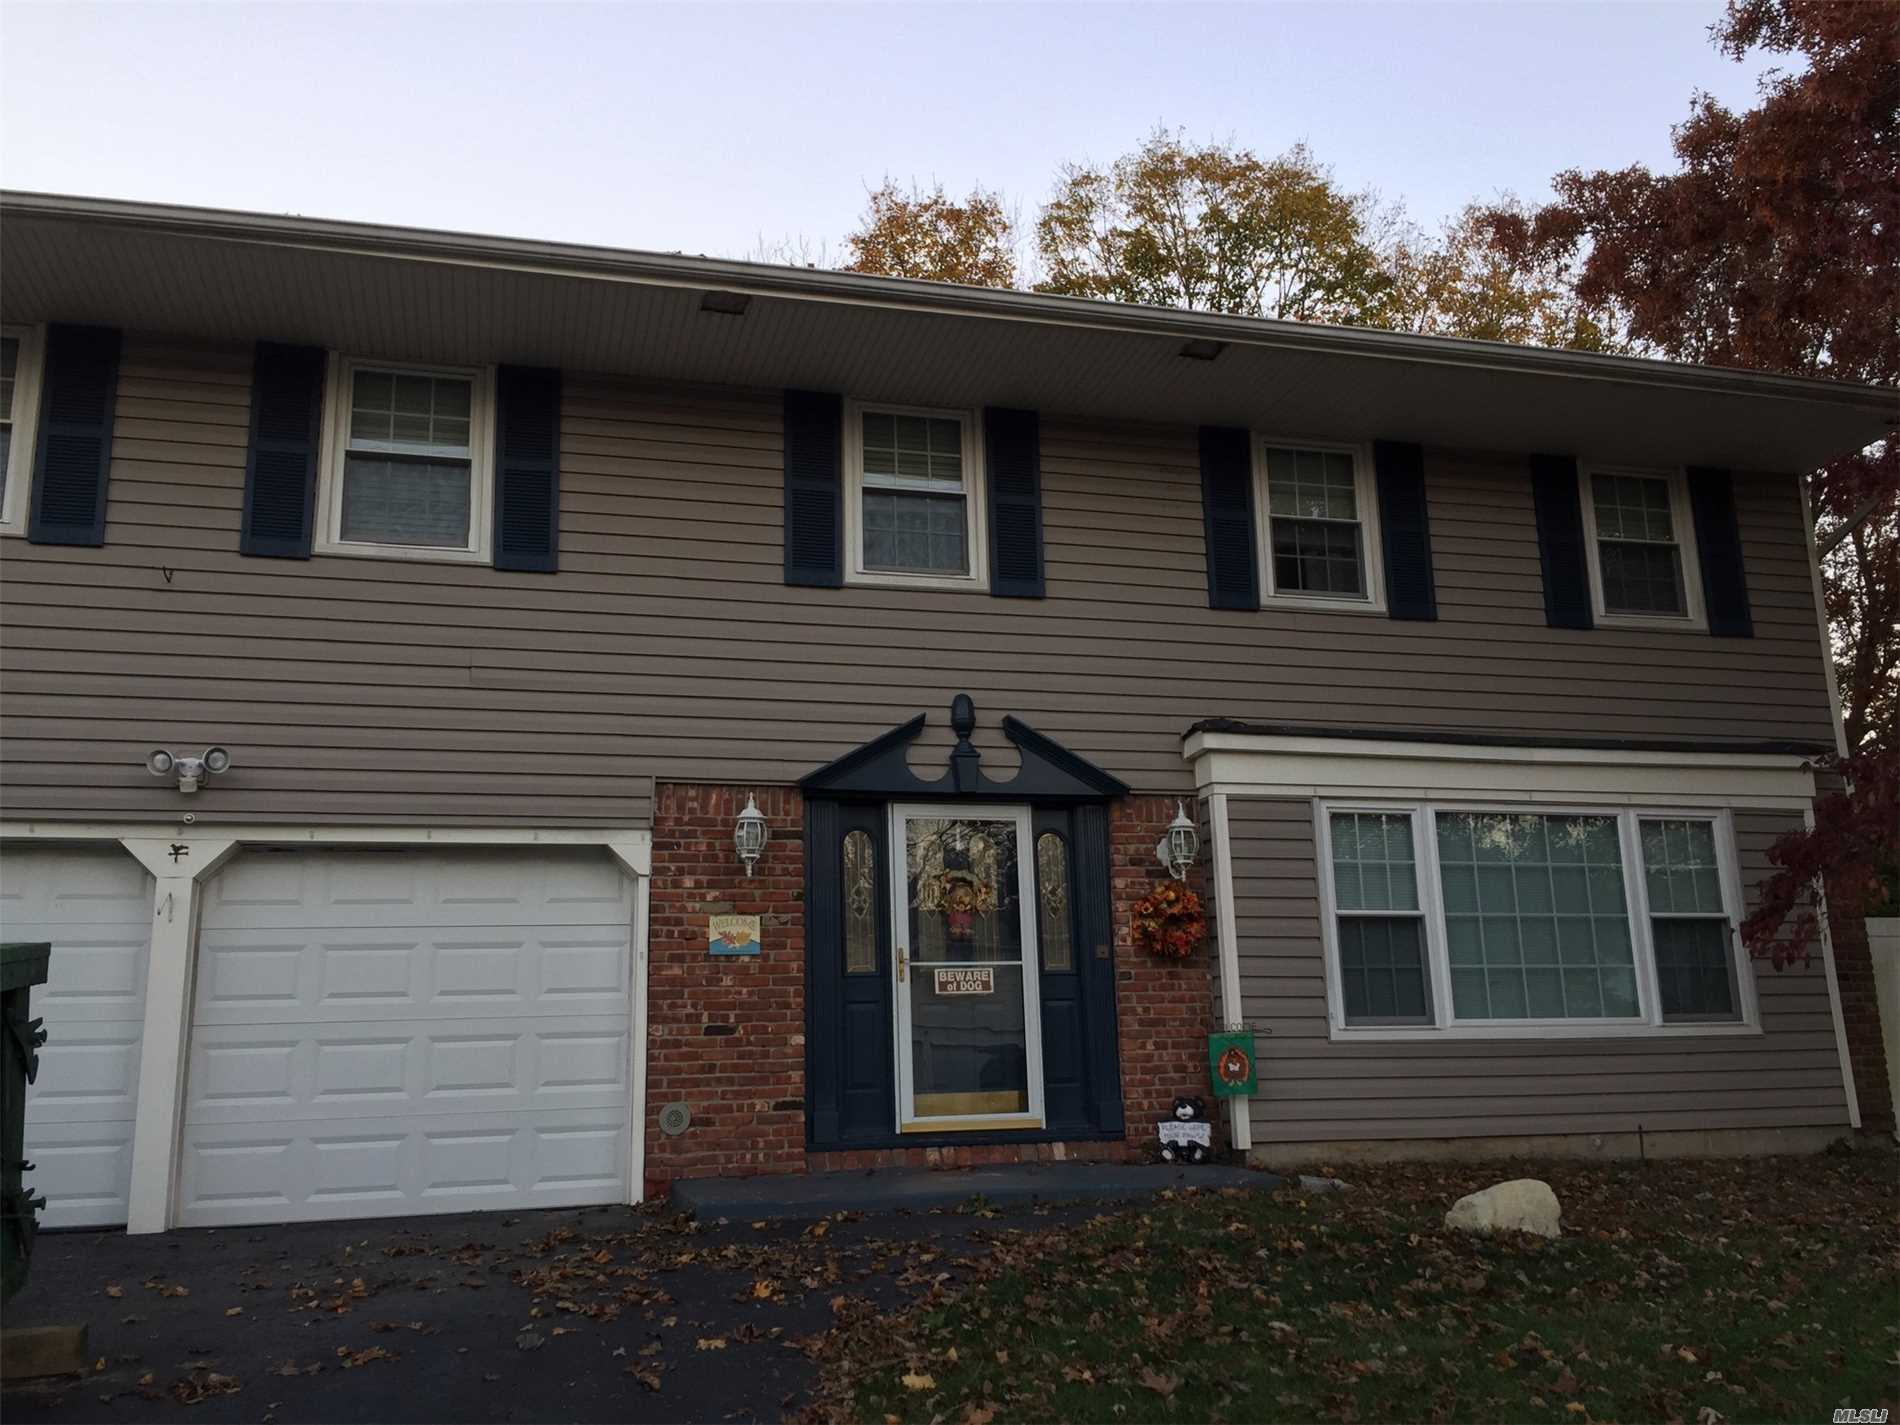 Spacious Colonial Priced To Sell In Three Village Sd. Possible Mother/Daughter With Permits. House Is Sold As Is. Buyer Must Confirm All Information. No Offer Is Considered Accepted Until Contracts Are Fully Executed. Sale Subject To Bankruptcy Court Approval.